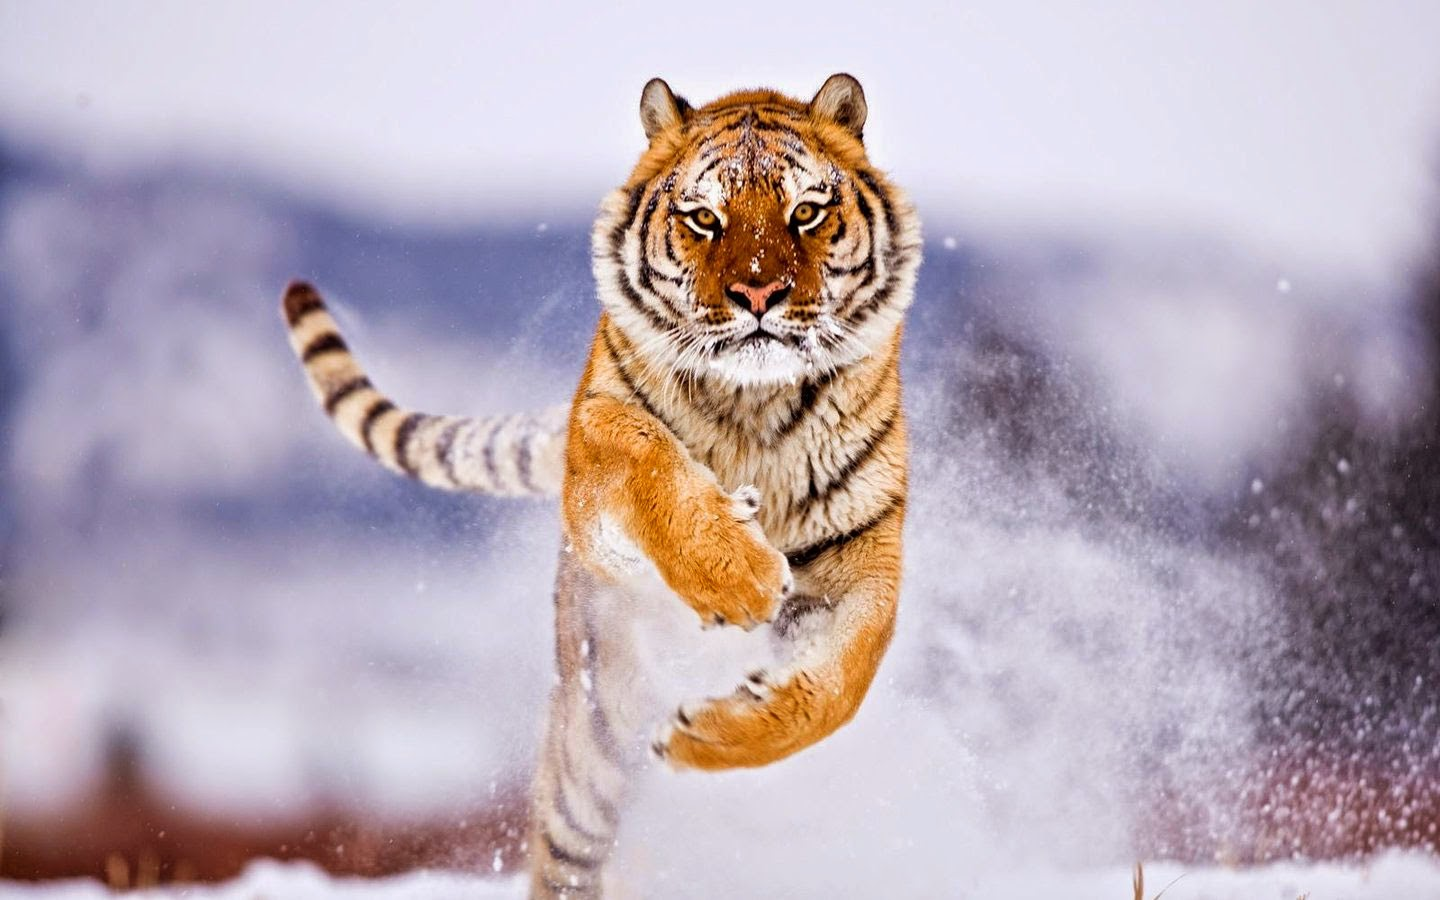 Lovable images wild tiger hd wallpapers free download cute tiger hd pictures hd images of - Tiger hd wallpaper for pc ...